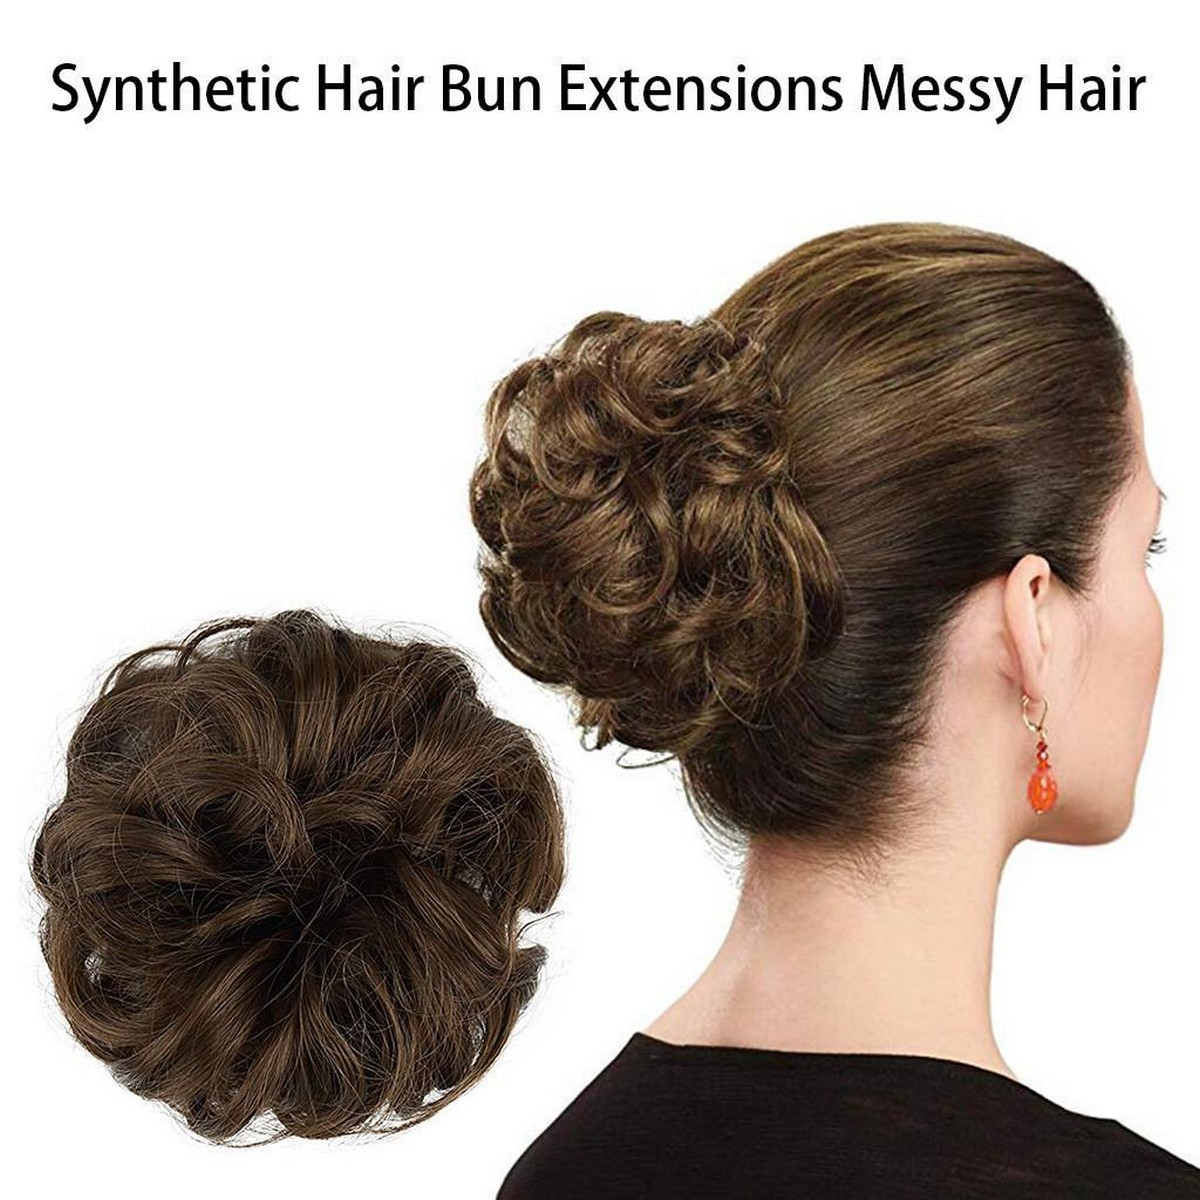 New Arrival Synthetic Bun Extensions Messy Scrunchies Hair Care Pieces for Women